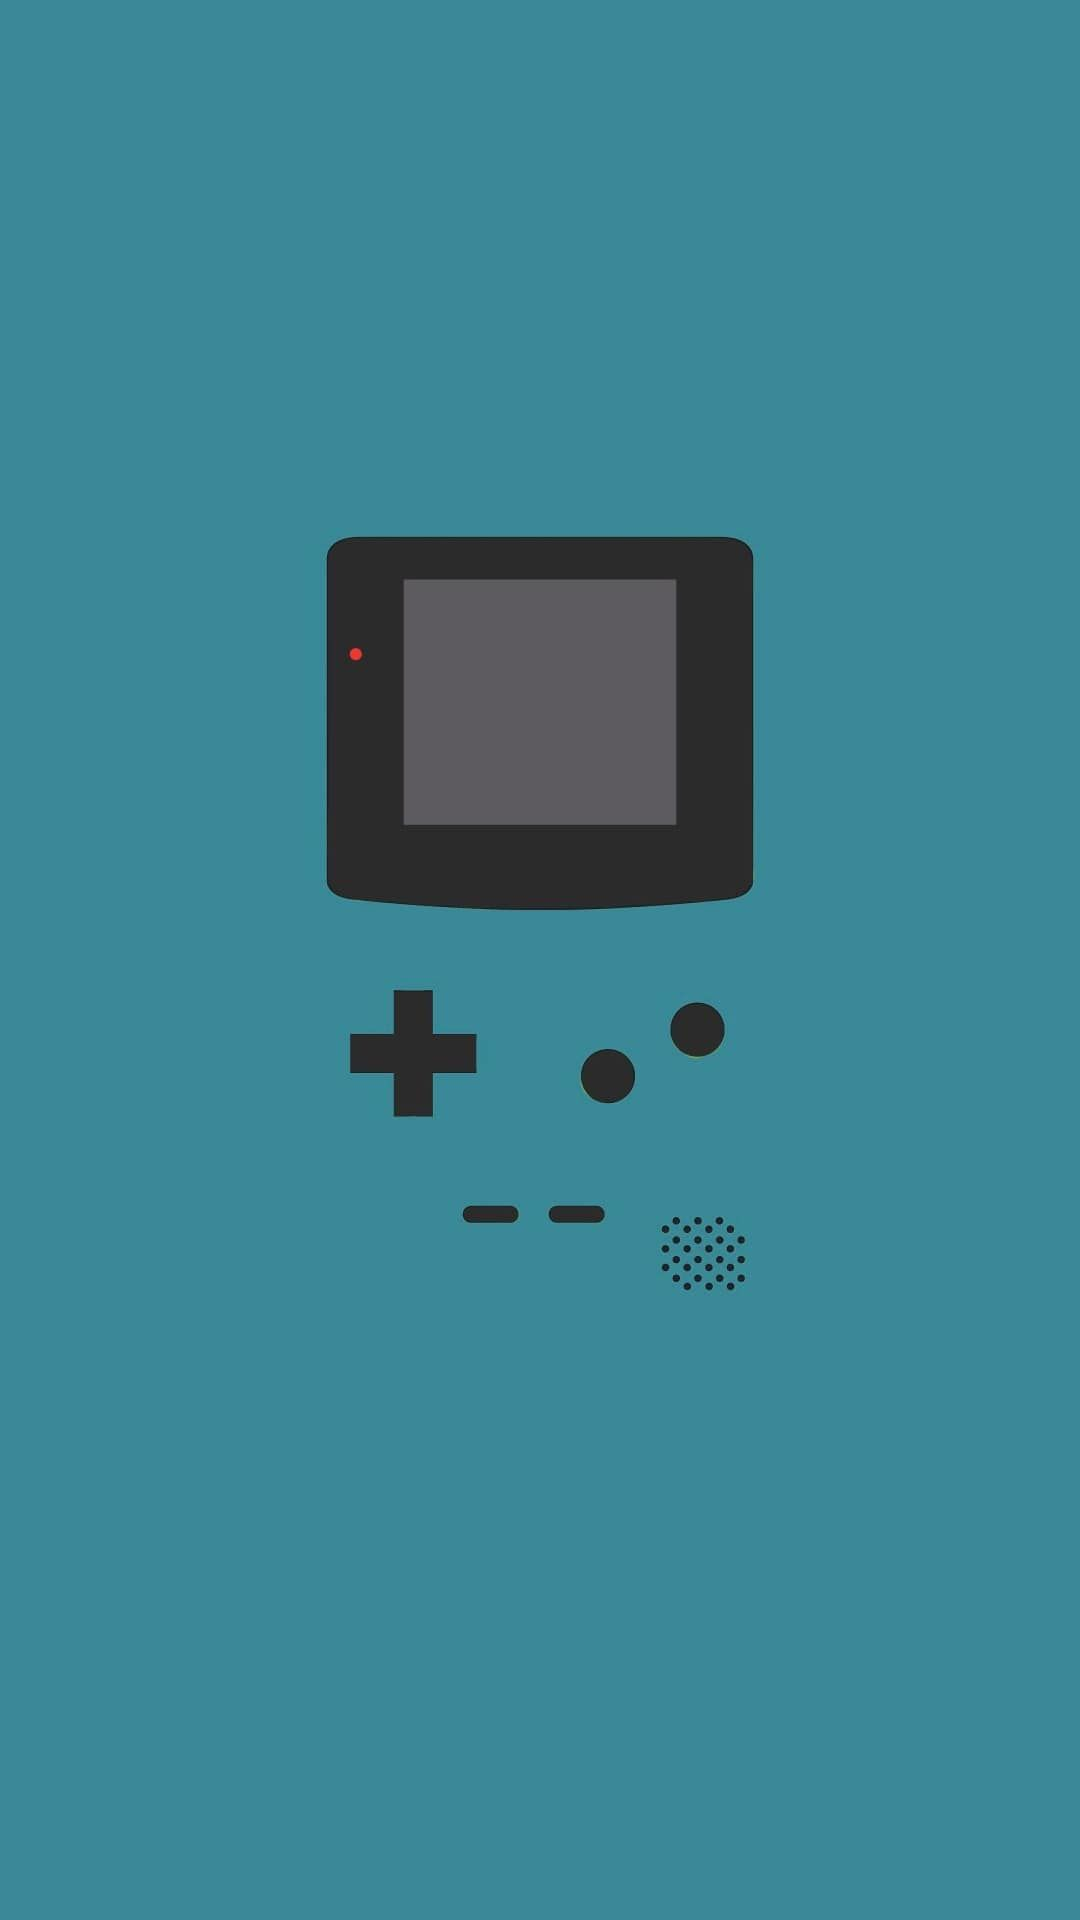 50+ Minimalist iPhone Wallpapers | Man of Many in 2020 ...